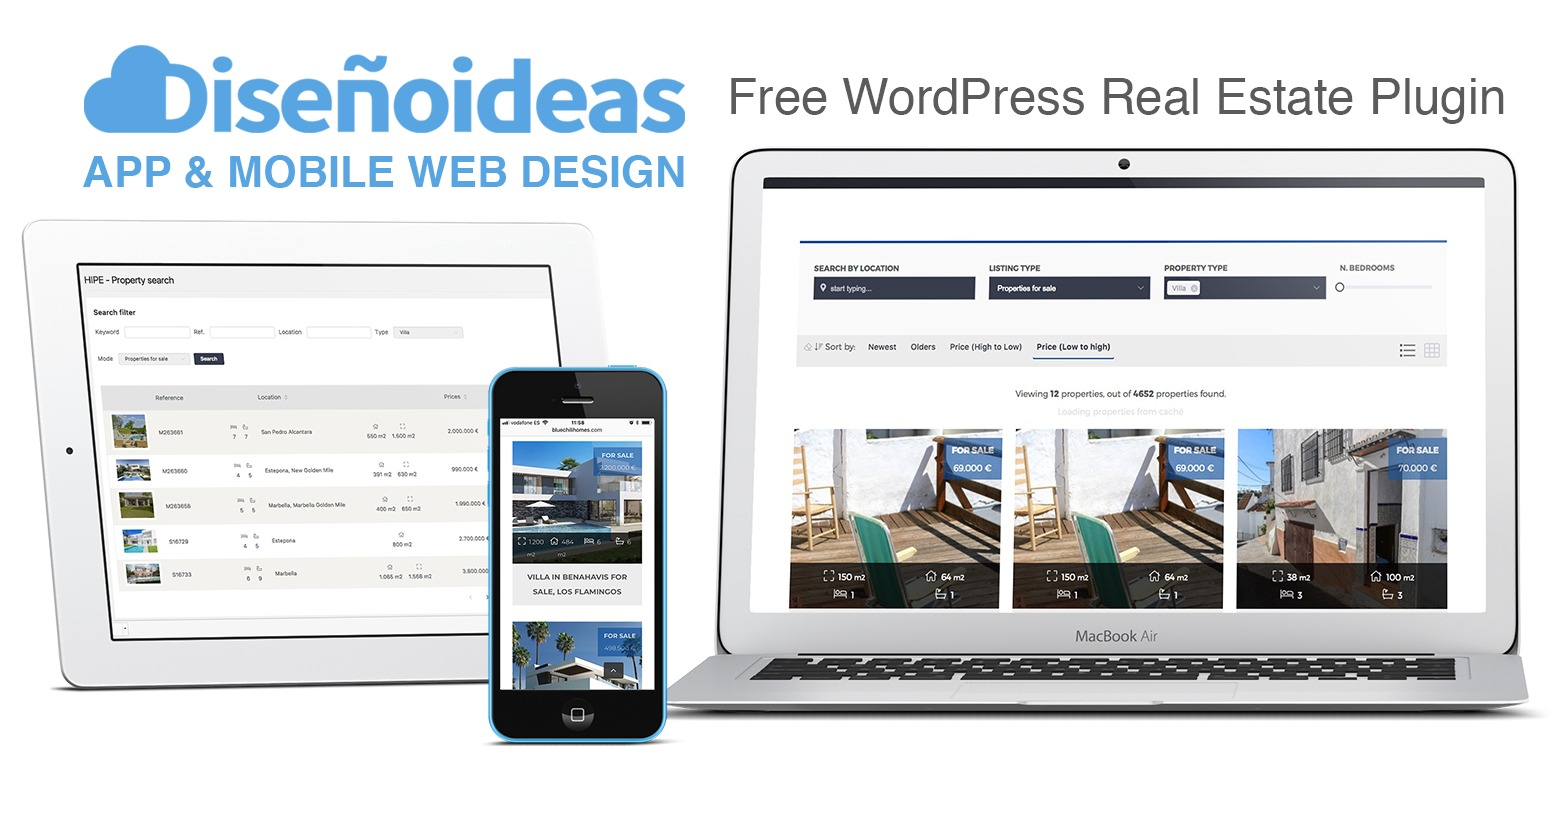 free wordpress real estate plugin milenio plus marbella